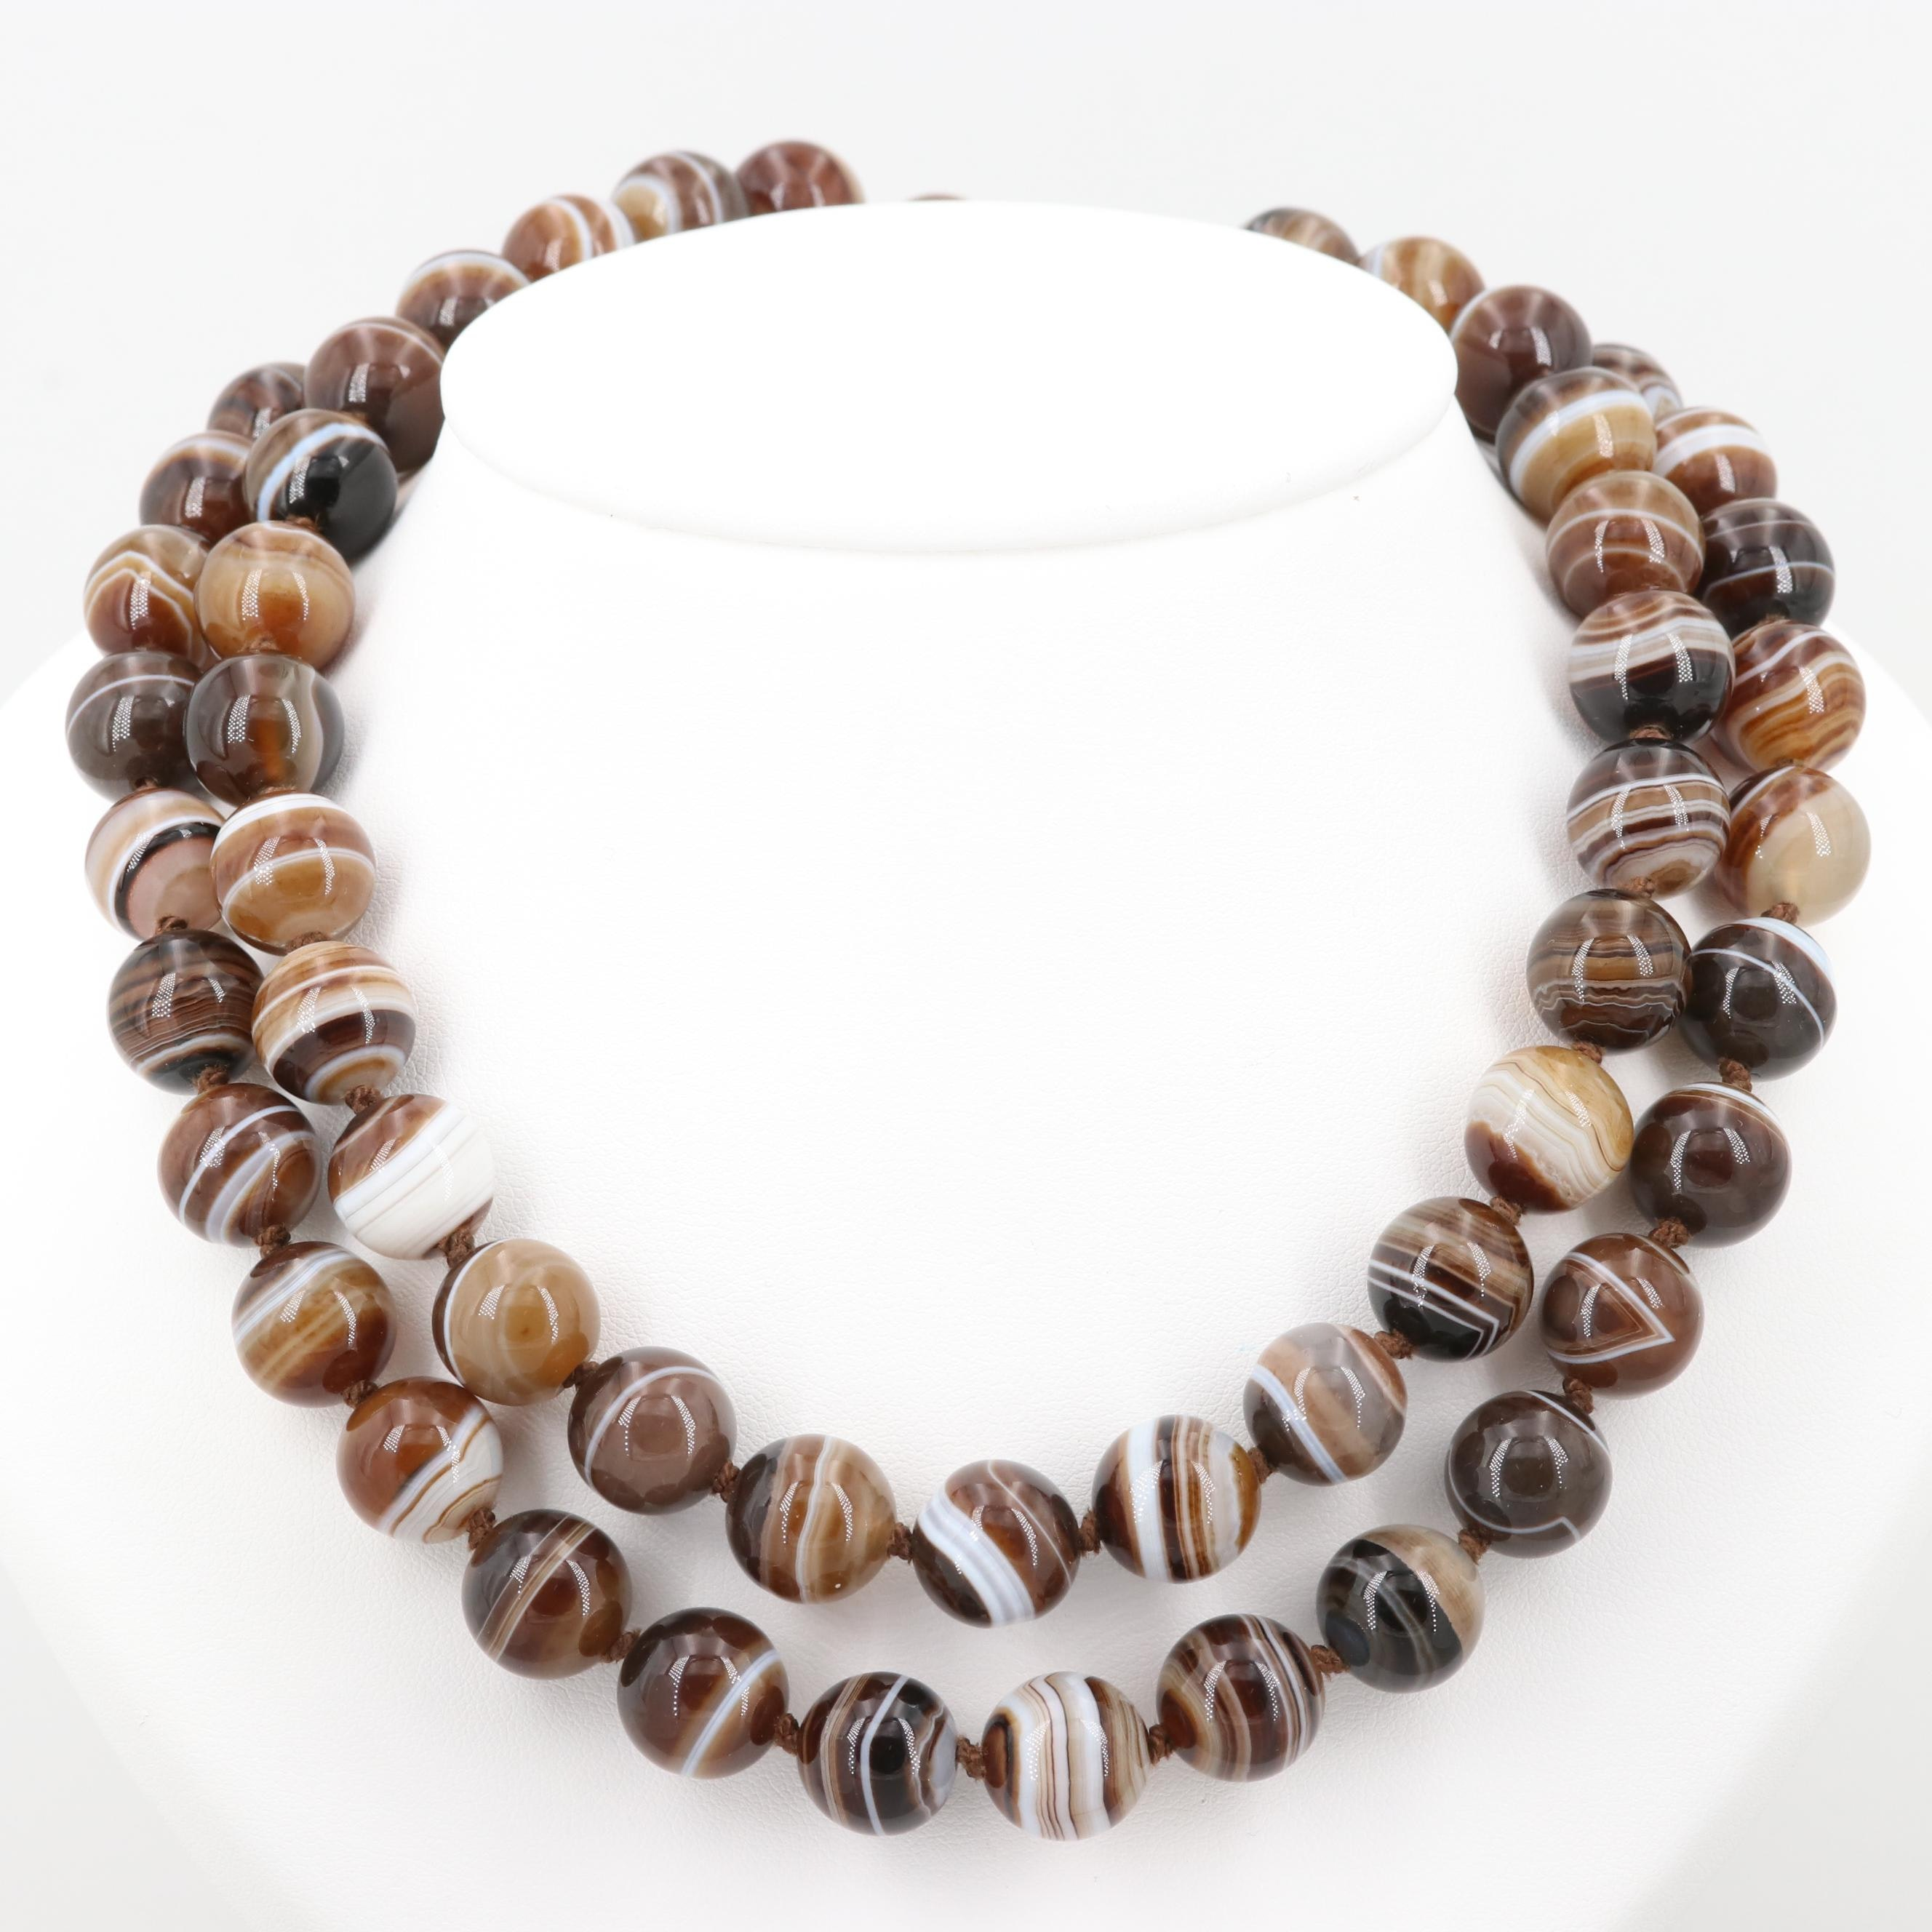 Individually Knotted Agate Beaded Endless Necklace